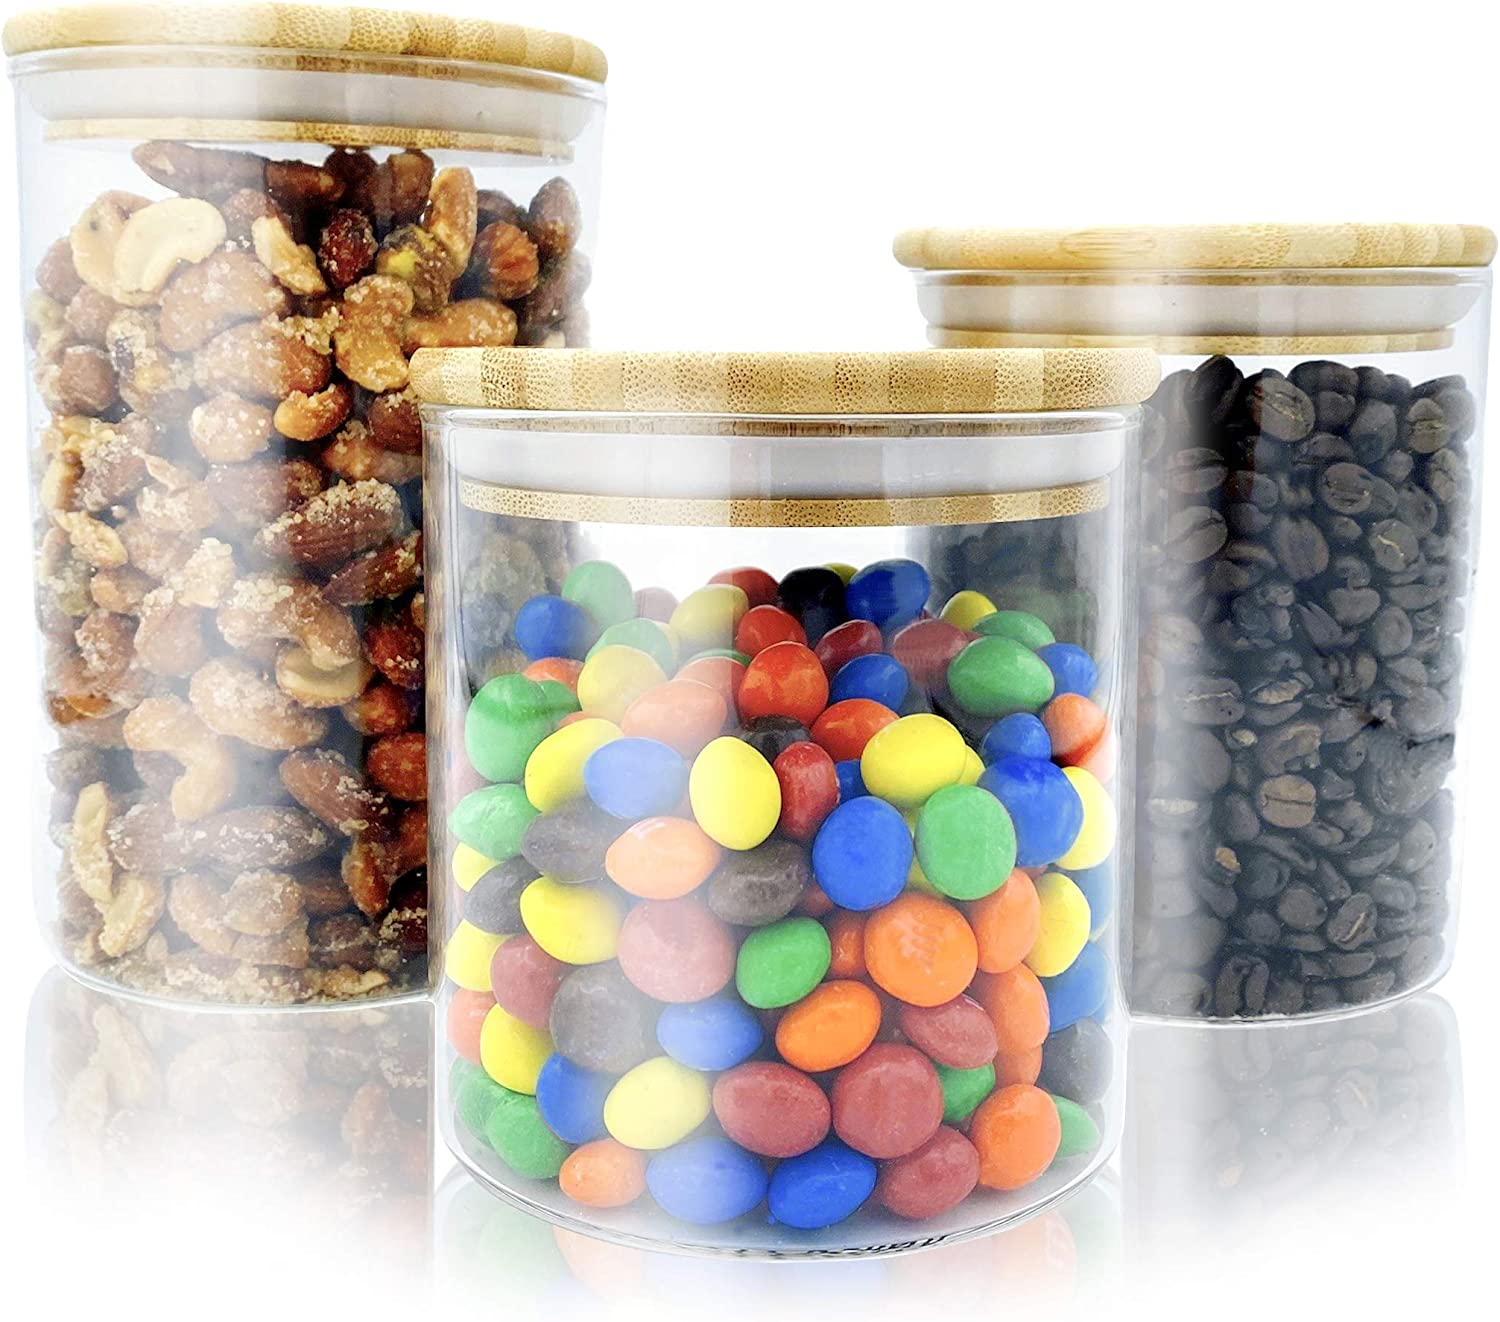 Bambooware Glass Storage Containers with Lids | Kitchen Organization | Pantry Organization - Set of 3 Canisters - Airtight Glass Jars Wooden Lid for Sugar, Flour, Candy, Cookies, Rice, Pasta, Spices